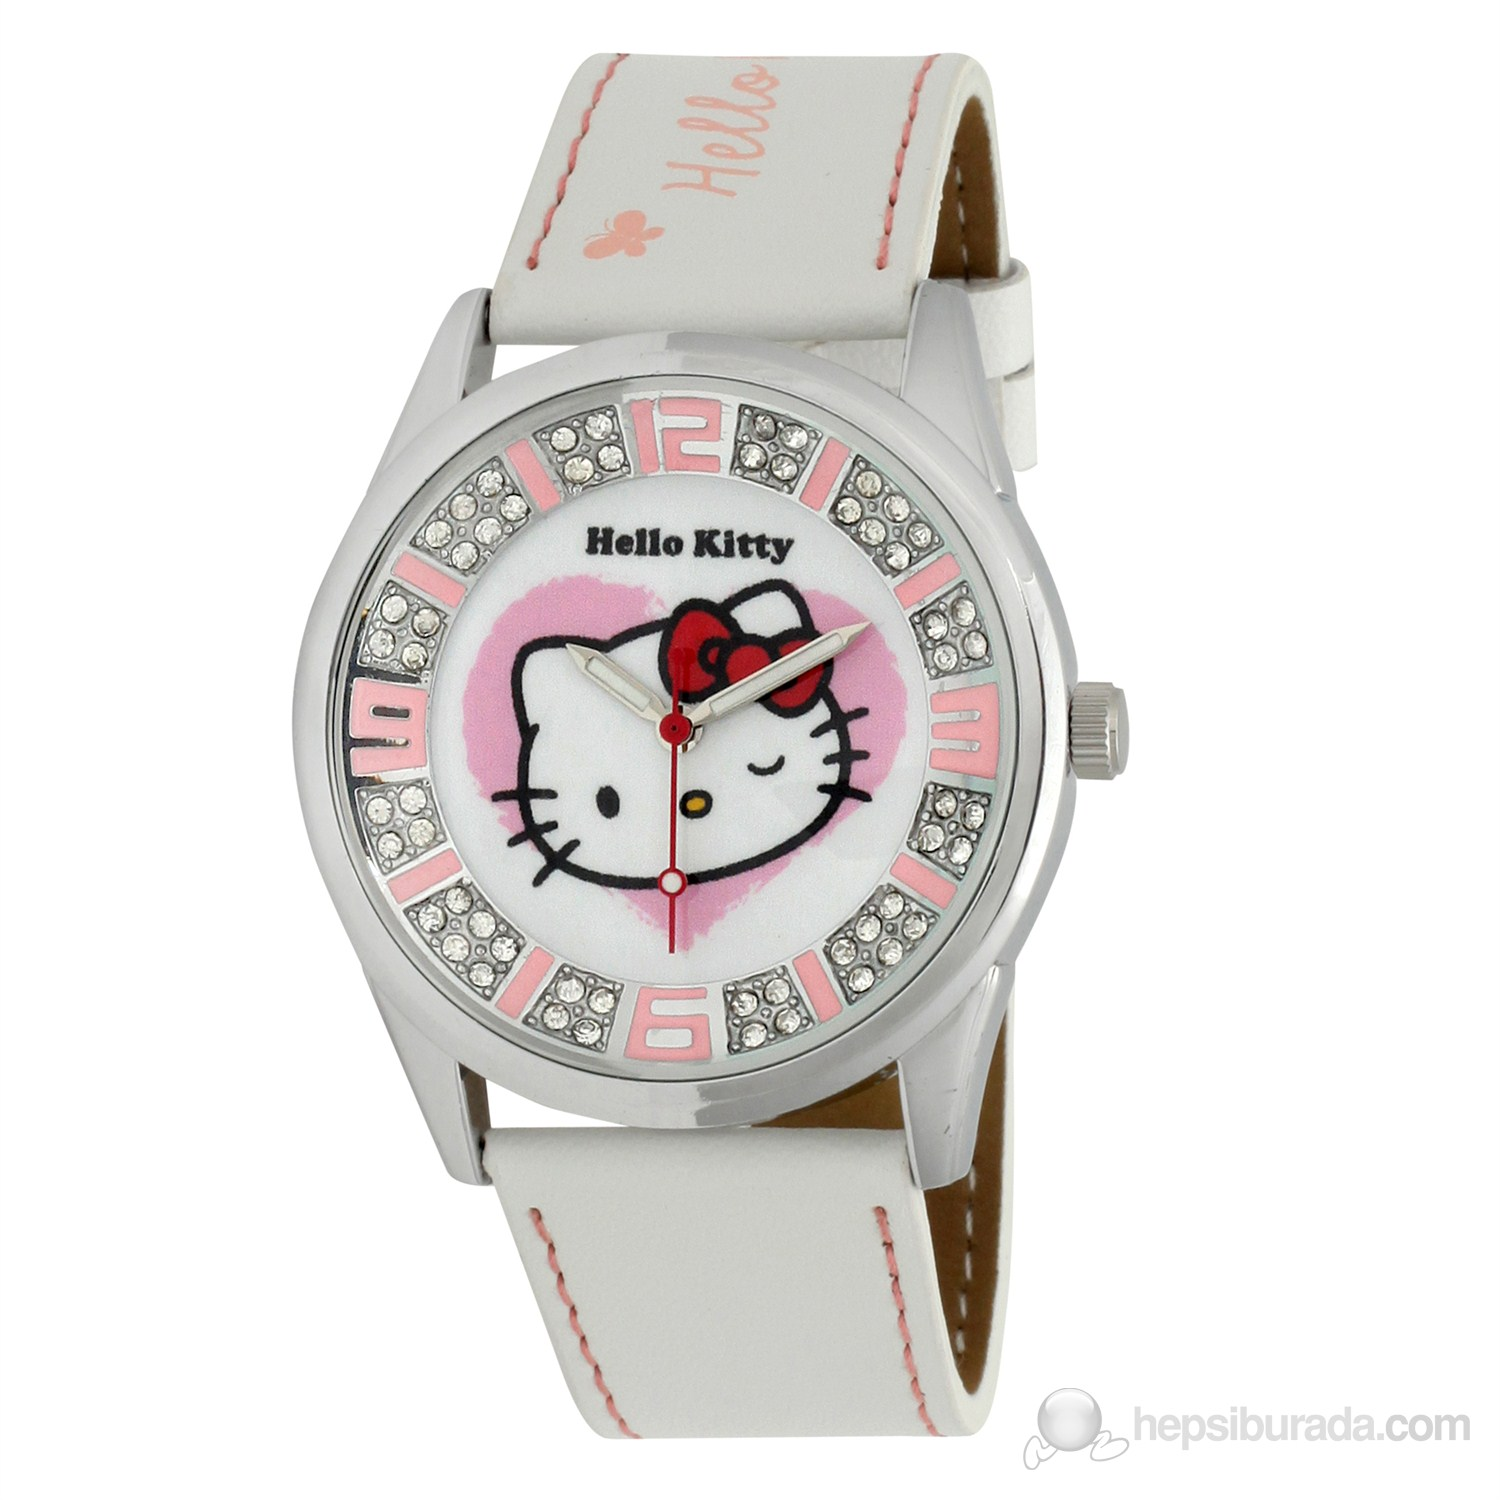 Hello Kitty HK109 Çocuk Kol Saati